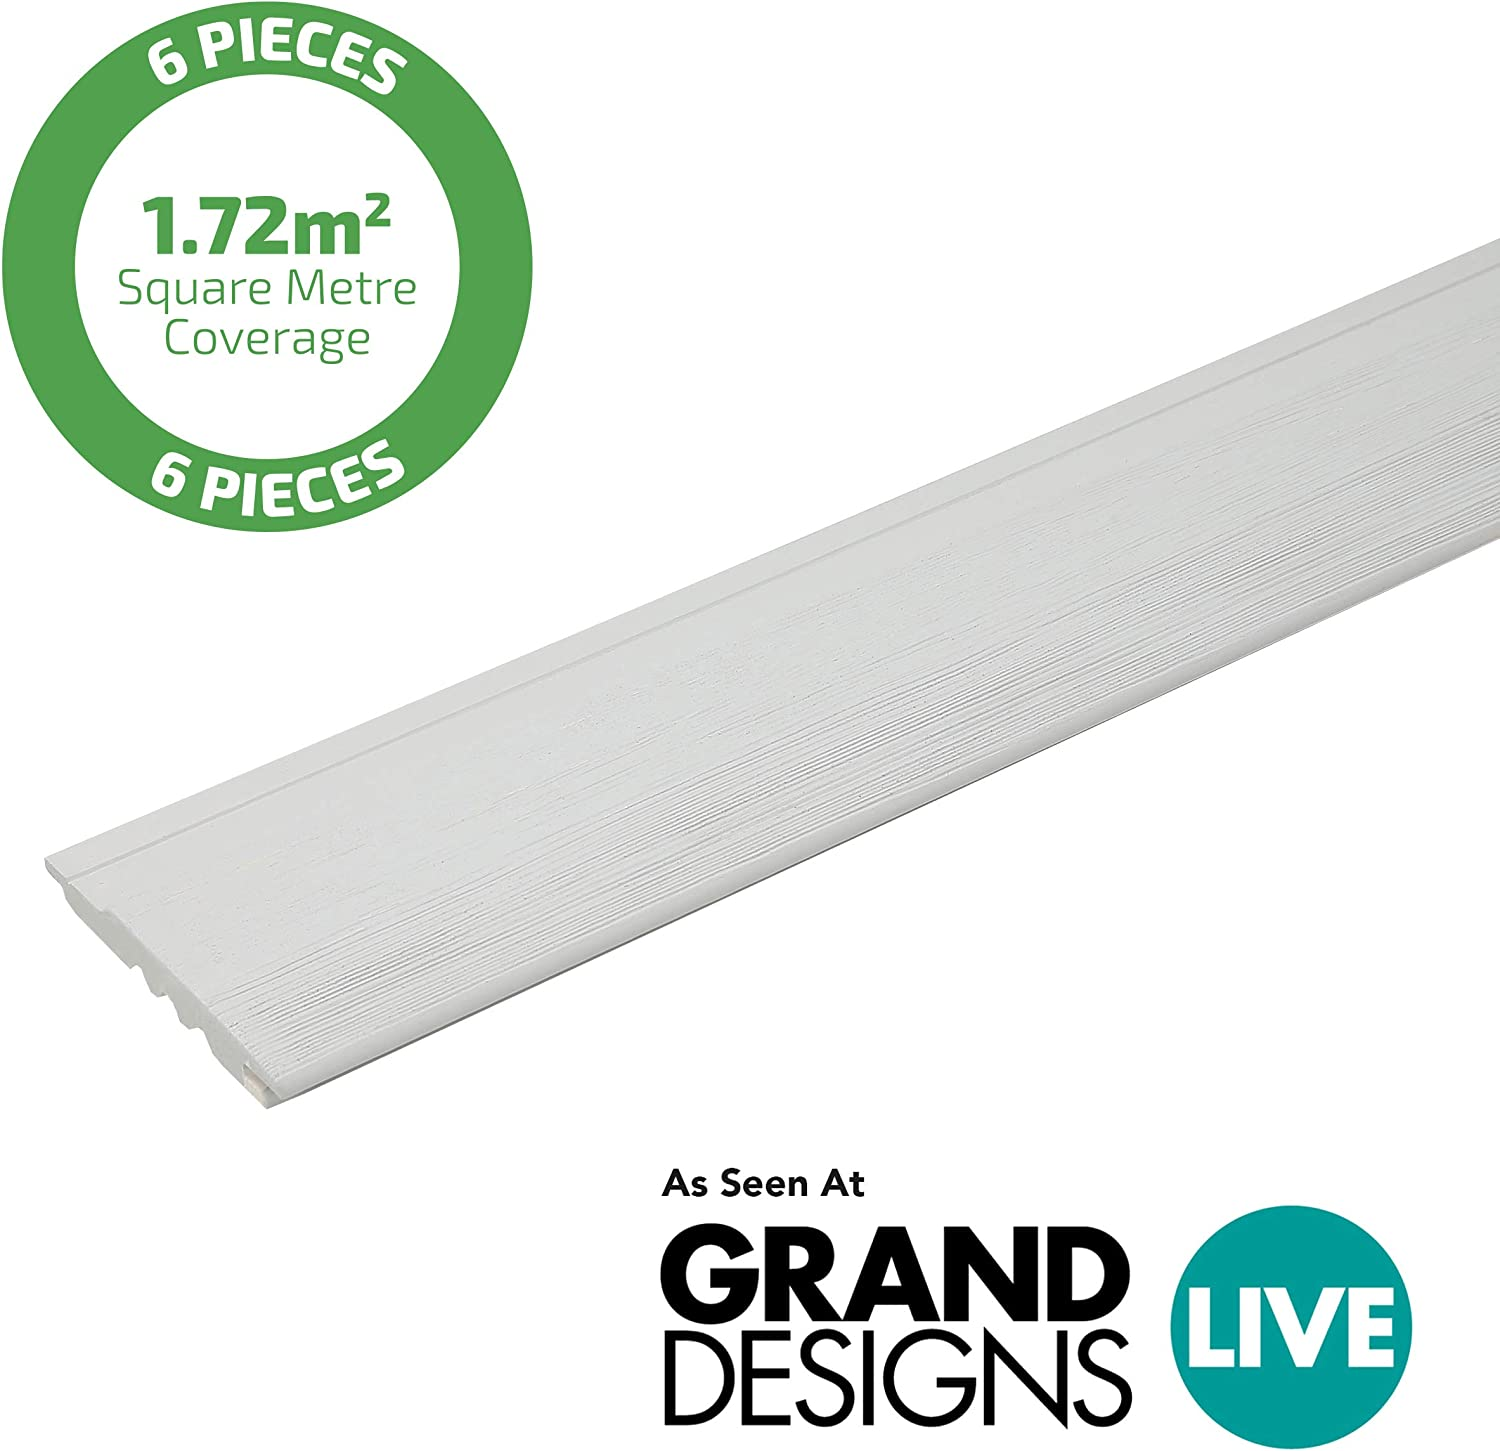 6 Pack 1.72m2 Tongue and Groove Secret Fix Profile Shiplap 19x146mmx2.357mtr for Both Horizontal or Vertical Cladding Light Grey Timber Cladding